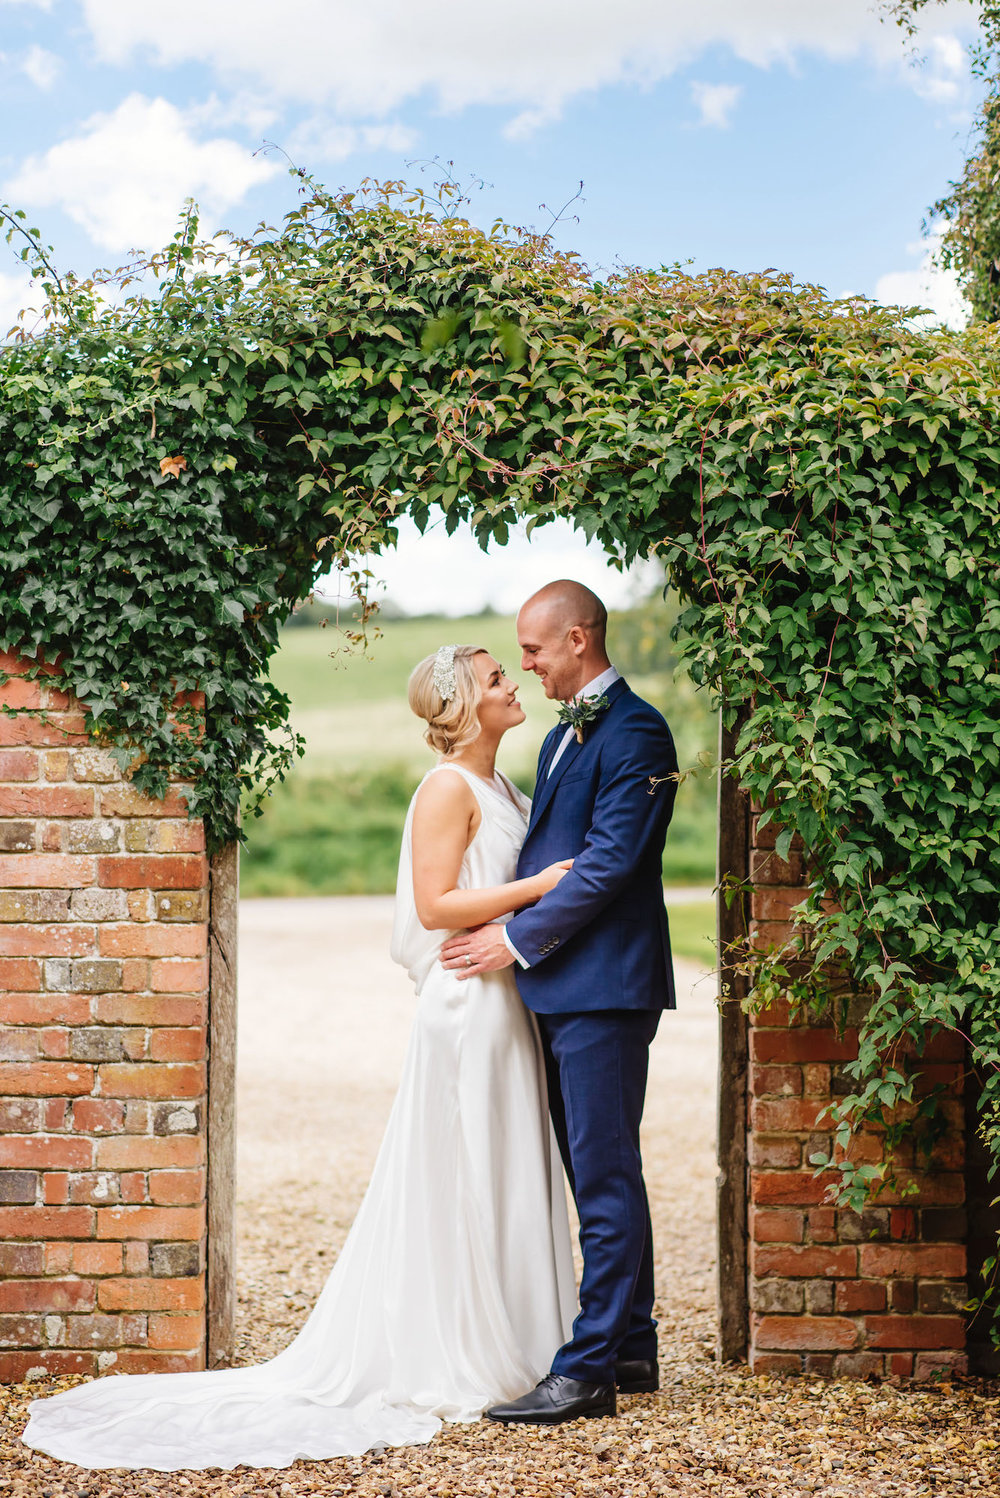 06_Rushall_manor_wiltshire_wedding_photography_bride_groom_portrait.jpg